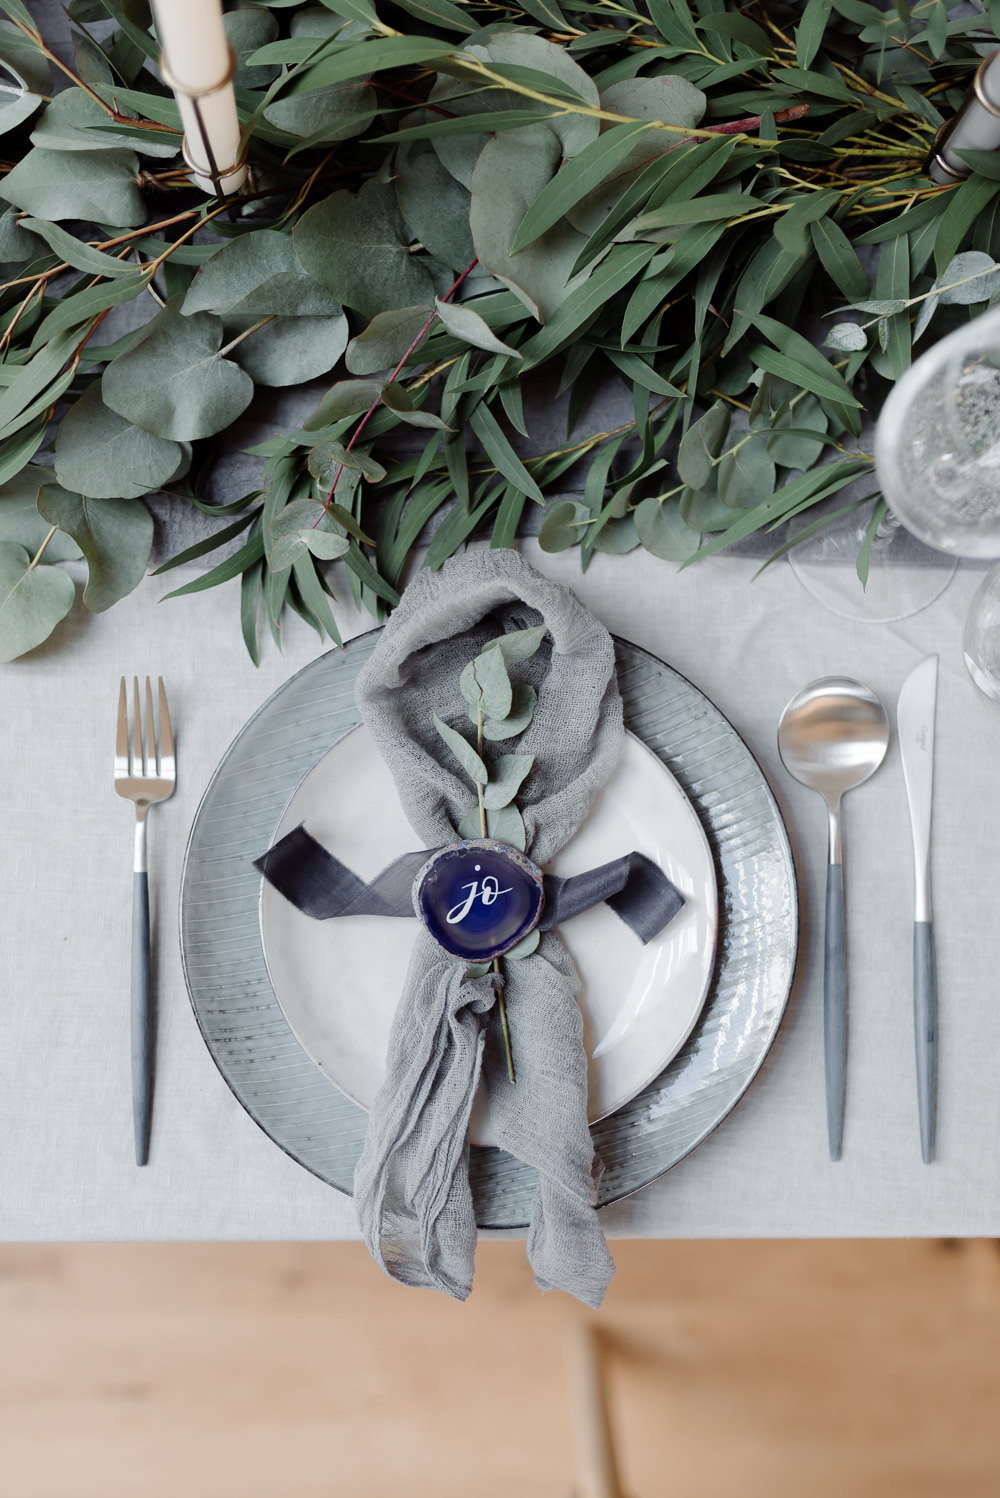 Agate Name Slice Calligraphy Place Setting Table Plates Cutlery Greenery Foliage Eucalyptus Ribbon Silk Napkin Grey Violet Wedding Ideas Chloe Ely Photography